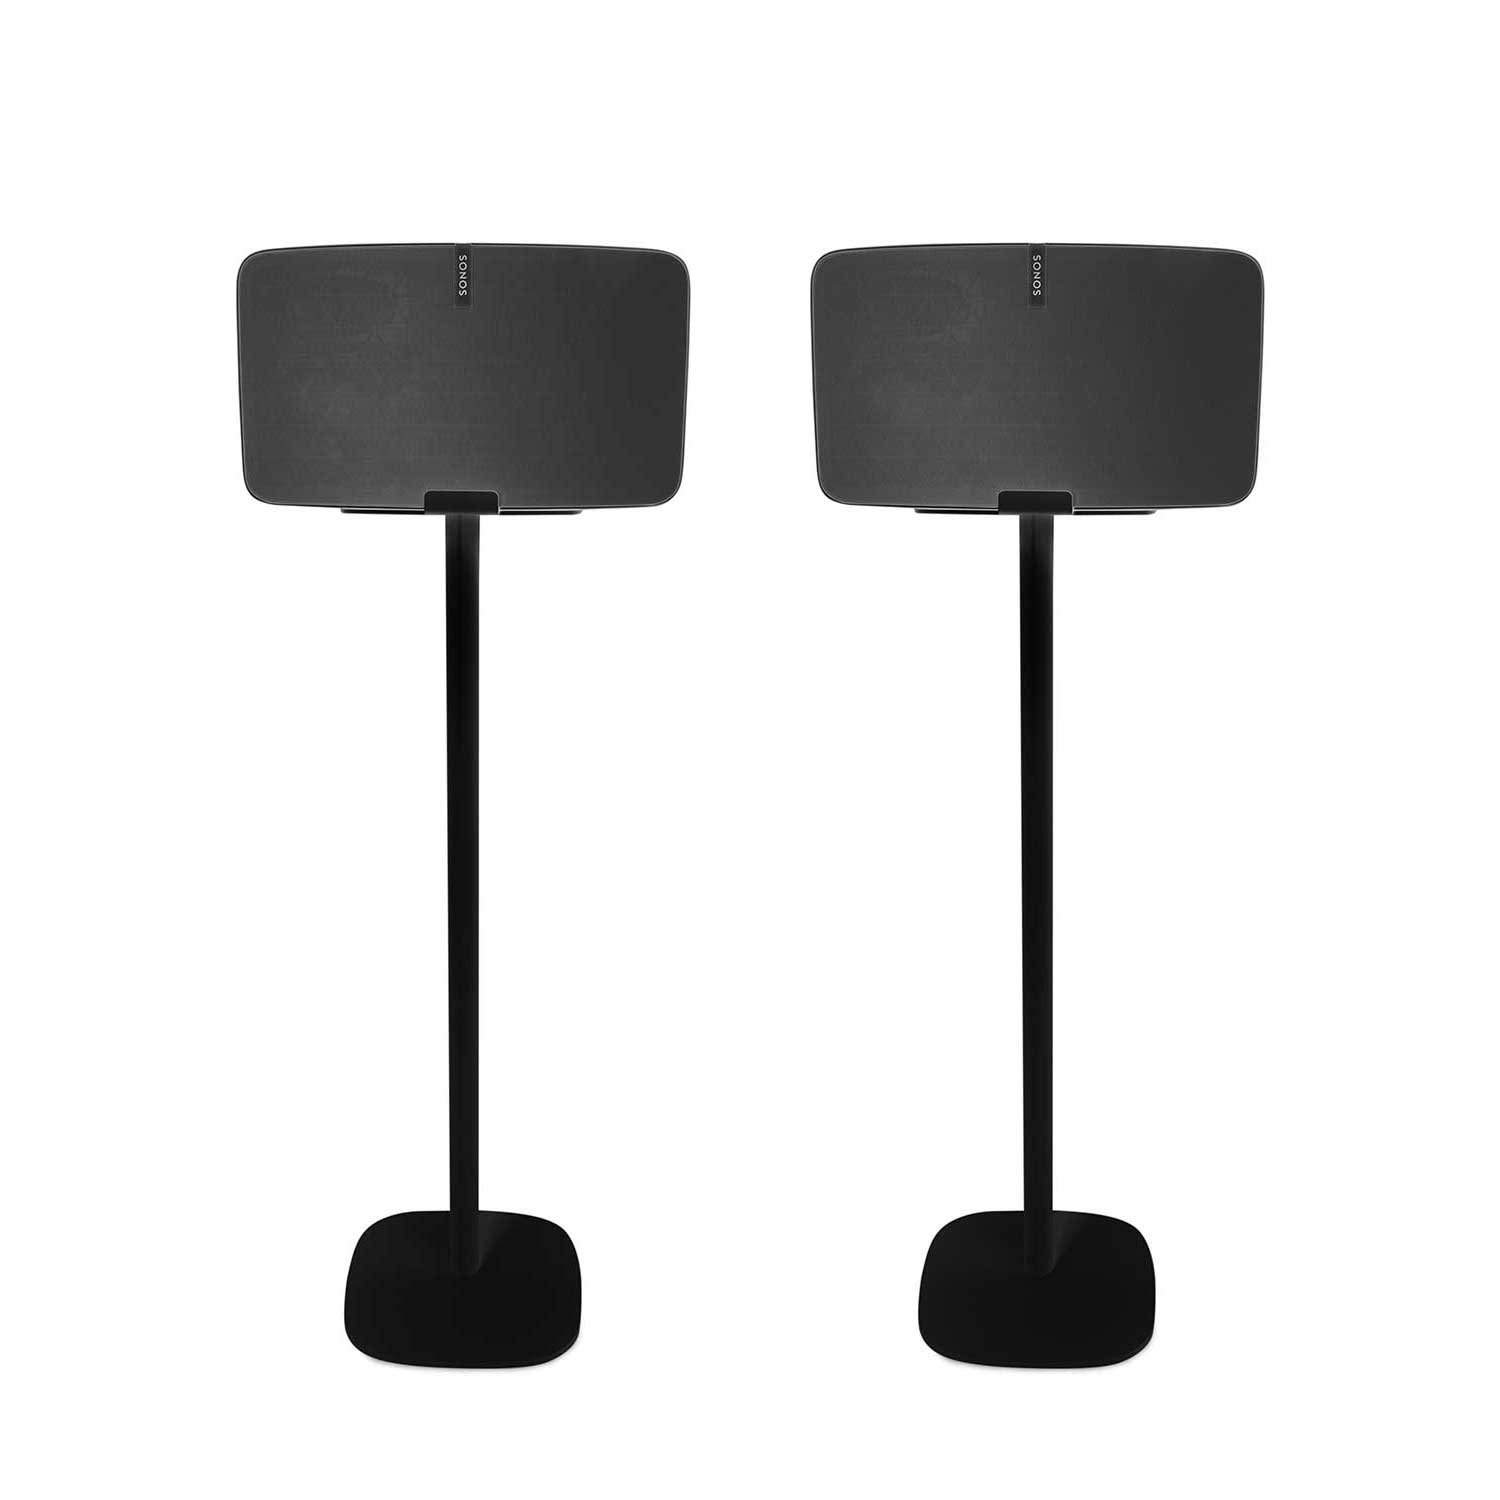 Vebos floor stand Sonos Play 5 gen 2 black set en optimal experience in every room - Allows you to place your SONOS PLAY 5 exactly where you want it - Two years warranty